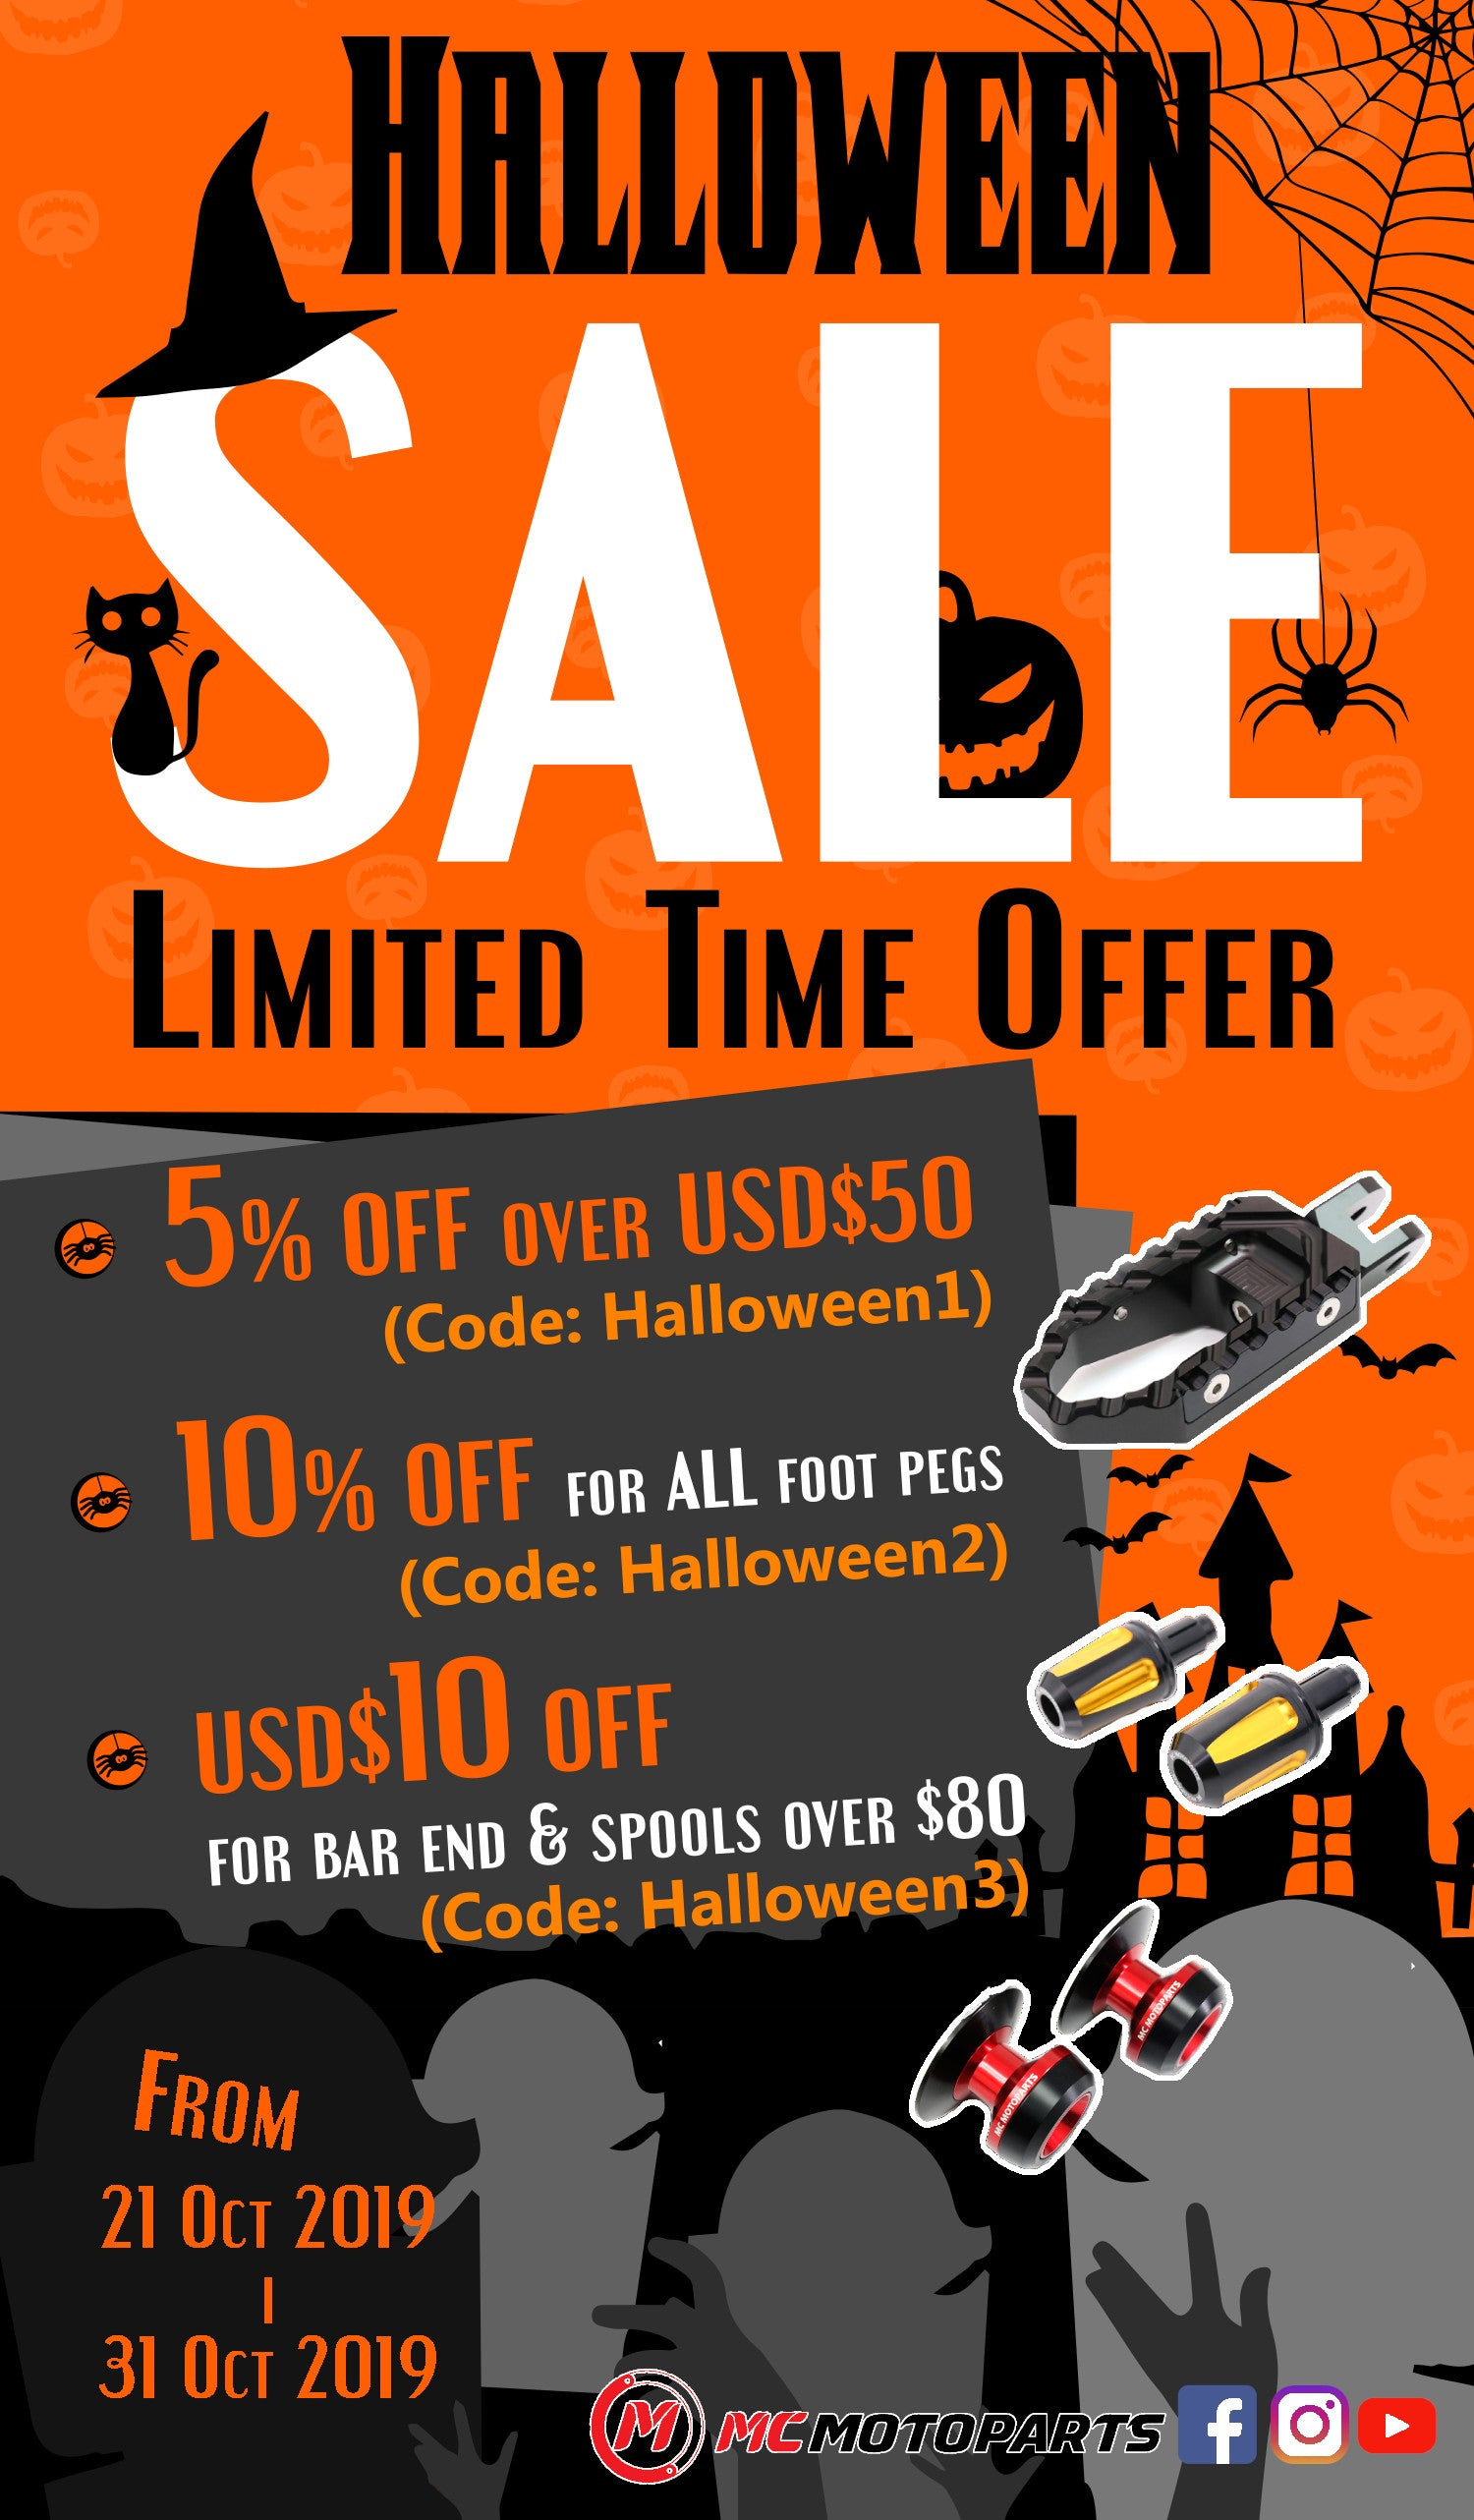 MC Motoparts Halloween Sale 2019